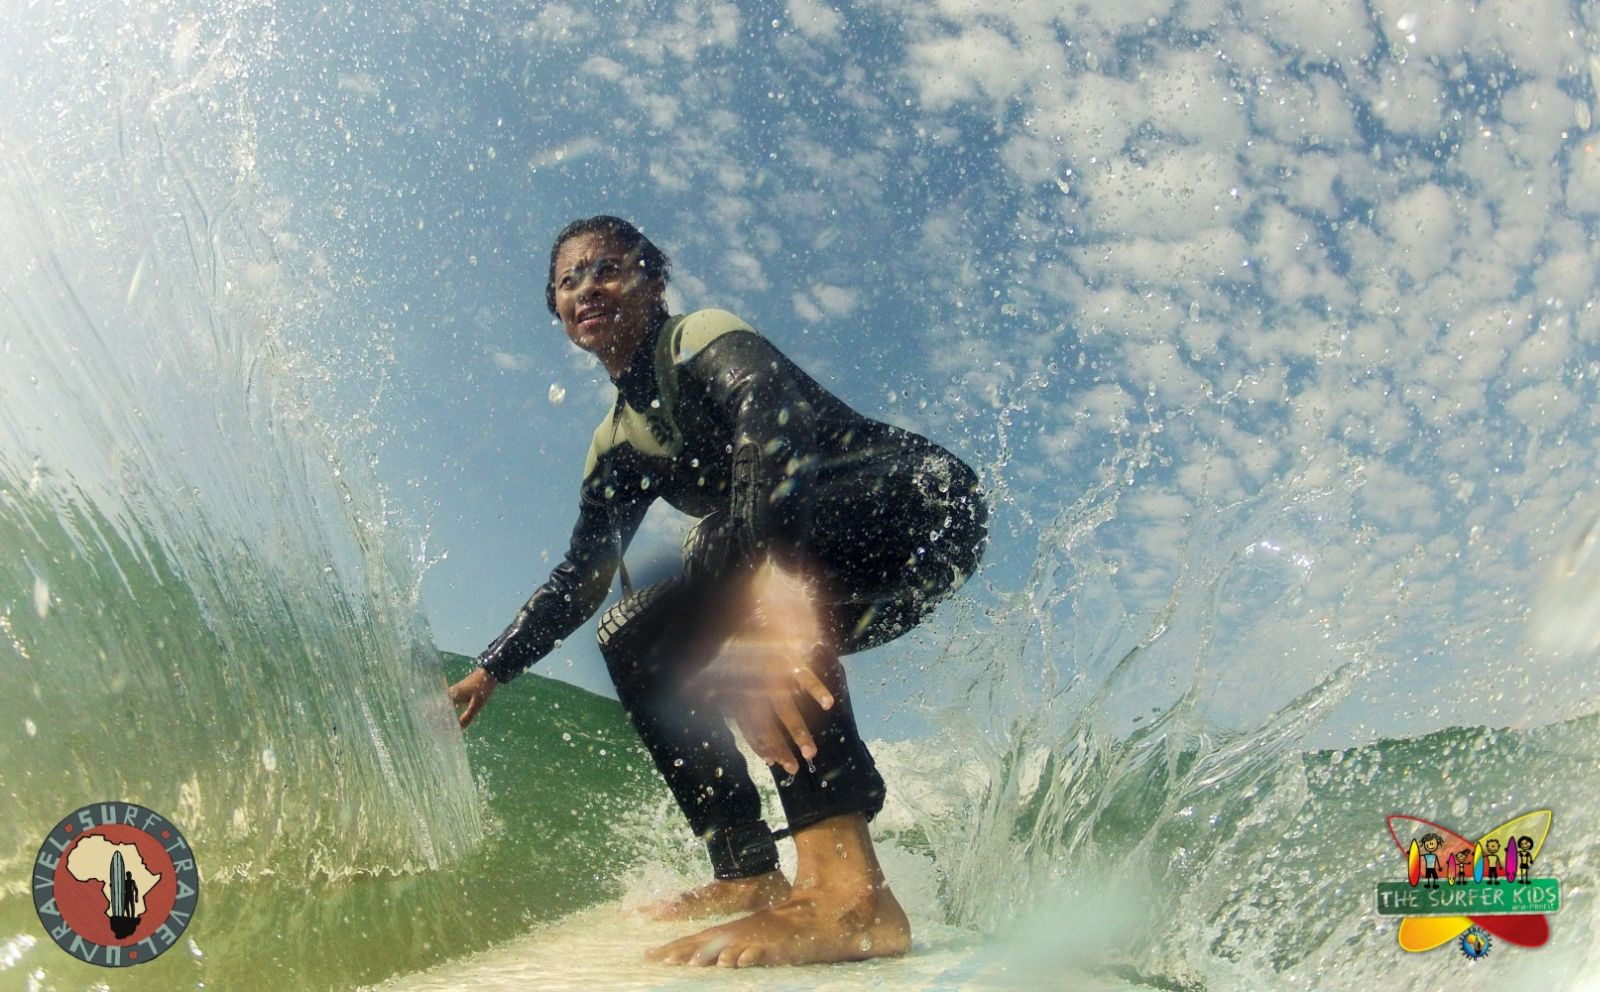 The Surfer Kids- South Africa: A Surfer Kid from Friemersheim, a rural community in South Africa. Travelers can surf with the nonprofit, The Surfer Kids and tour proceeds go toward supporting underprivileged children.